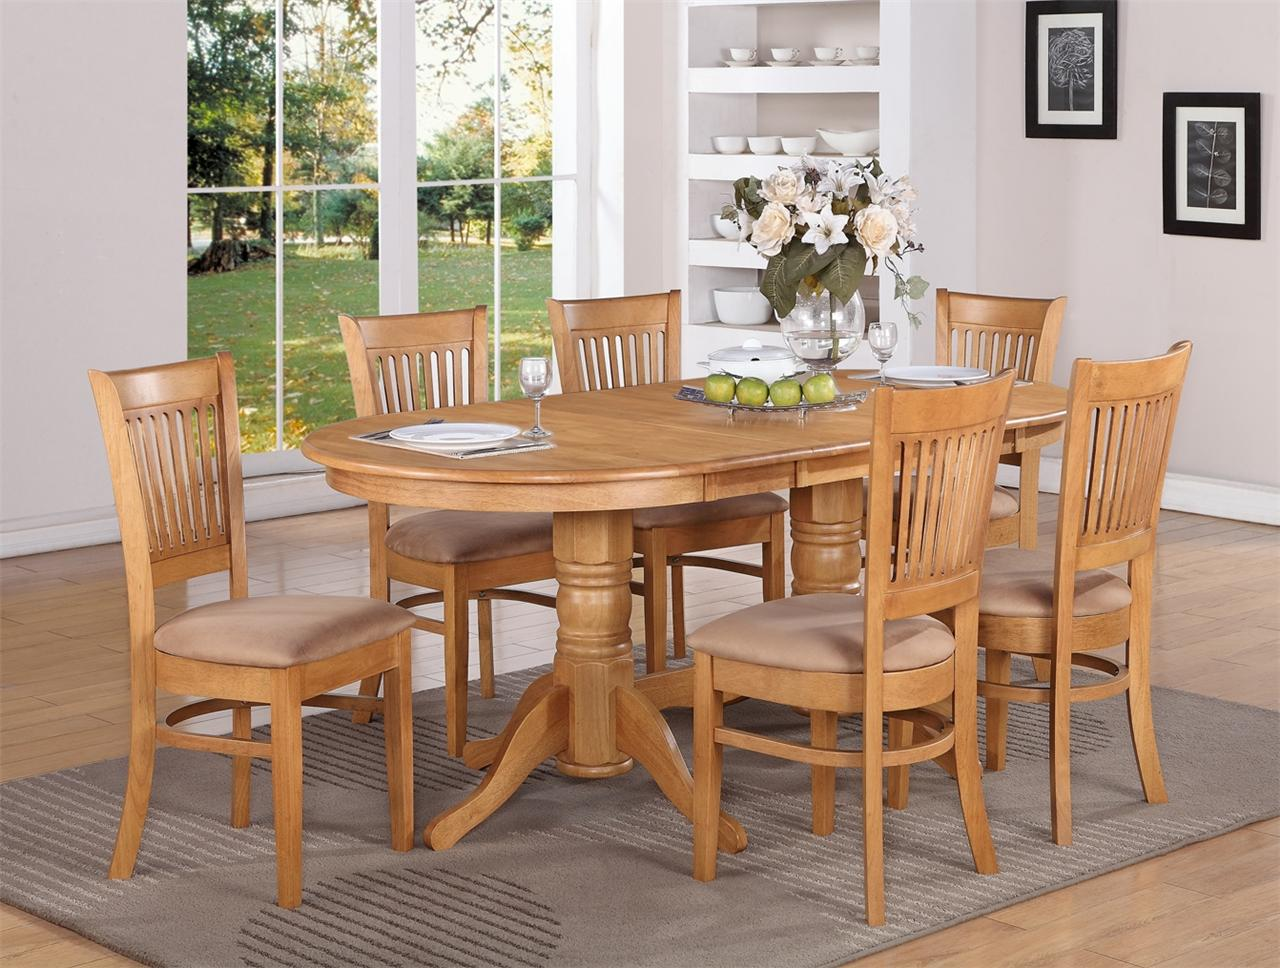 9 PC VANCOUVER OVAL DINETTE KITCHEN DINING SET TABLE W8